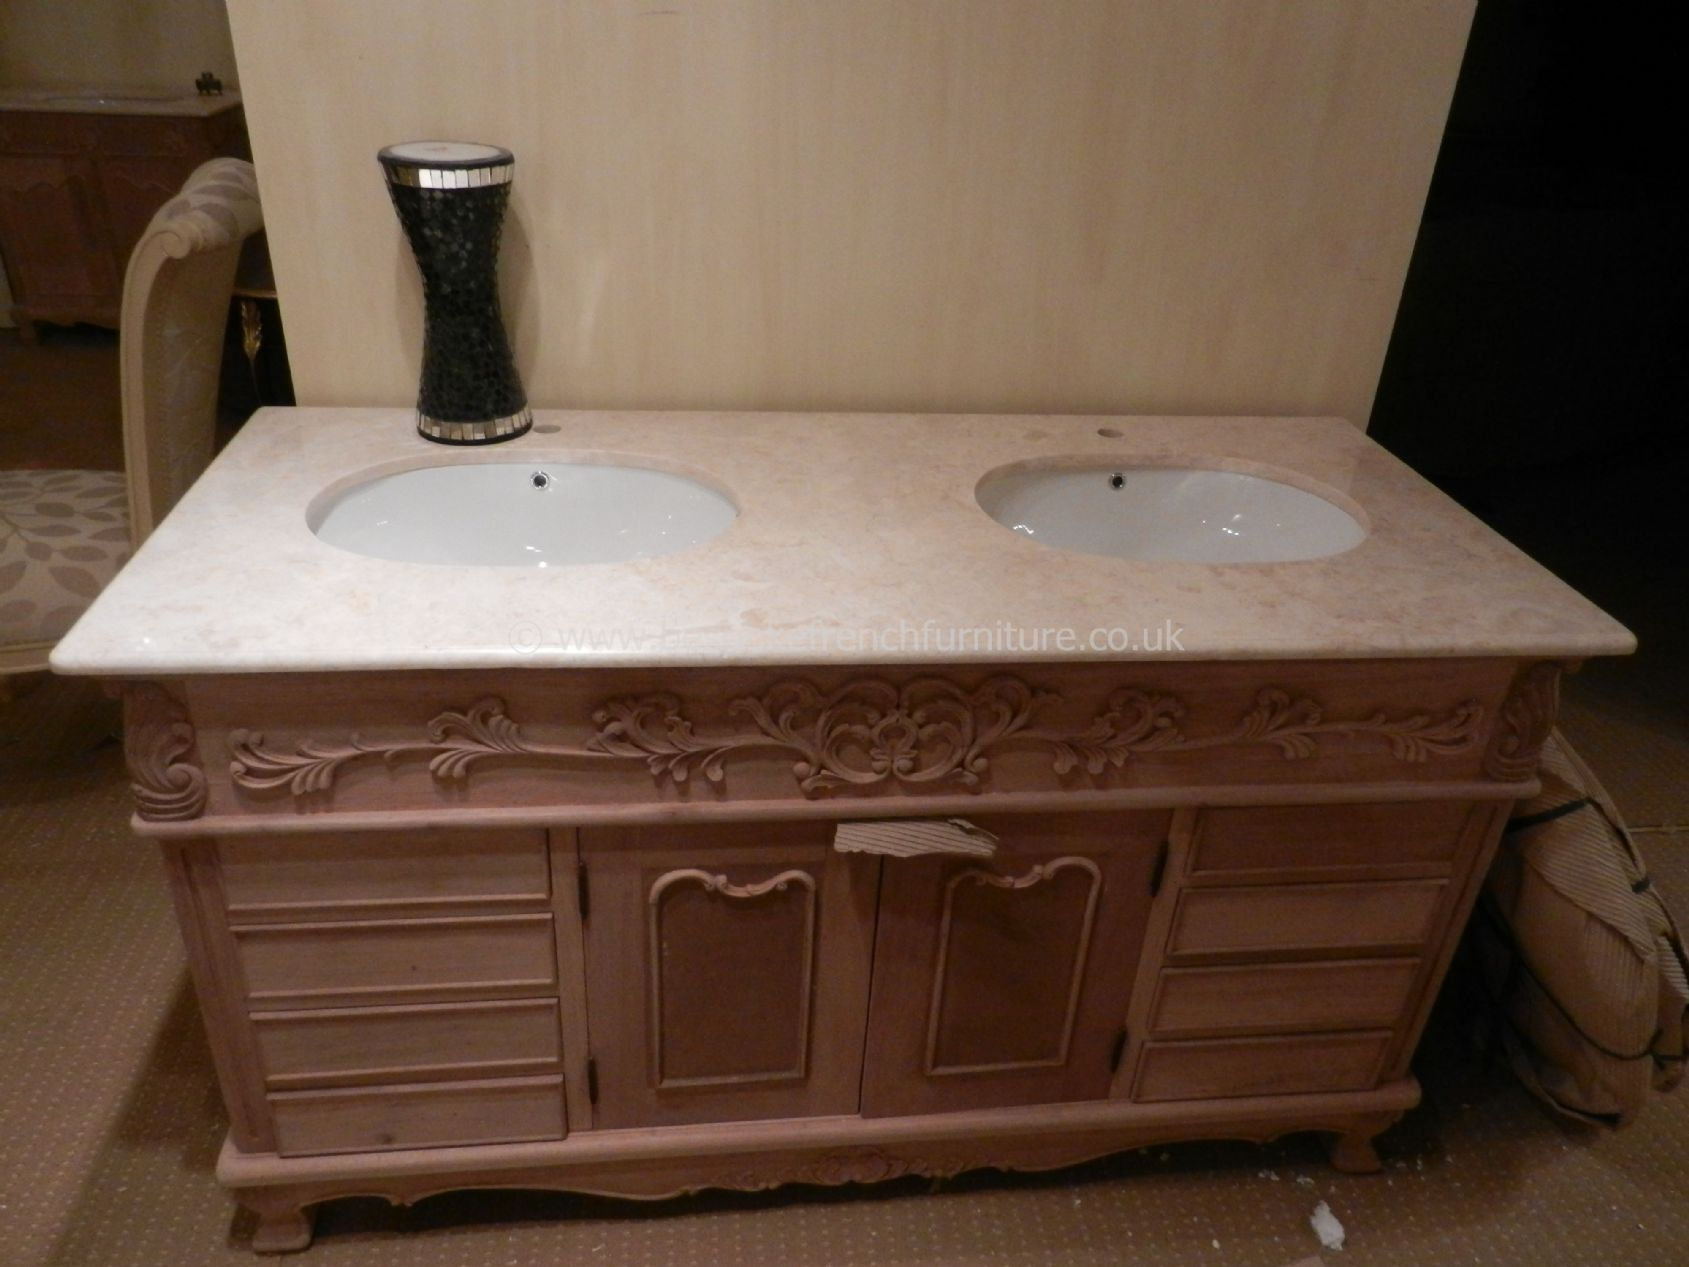 French style bathroom vanity units - Bespoke Double Bowl Sink Vanity Unit With Solid Marble Top